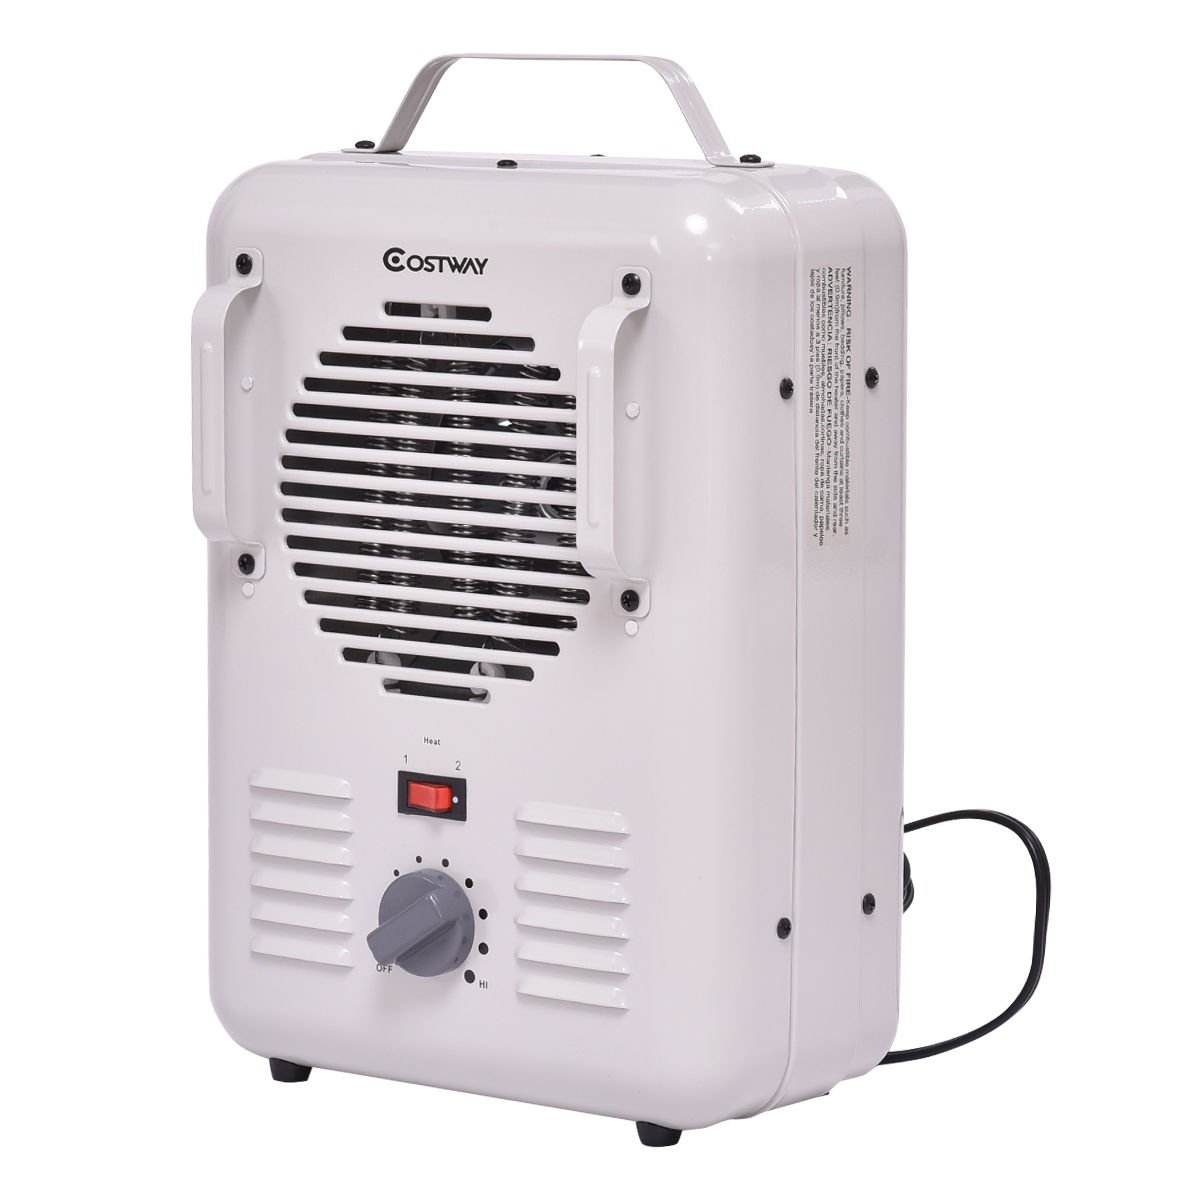 White 1300W 1500W Air Space Heater Electric Portable Lightweight Safety Tip-Over Utility Thermostat 2 Heat Settings Bedroom Bathroom Guest Living Room Air Heating Carrying Handle 9.5 x 5.1 x 14.5 in